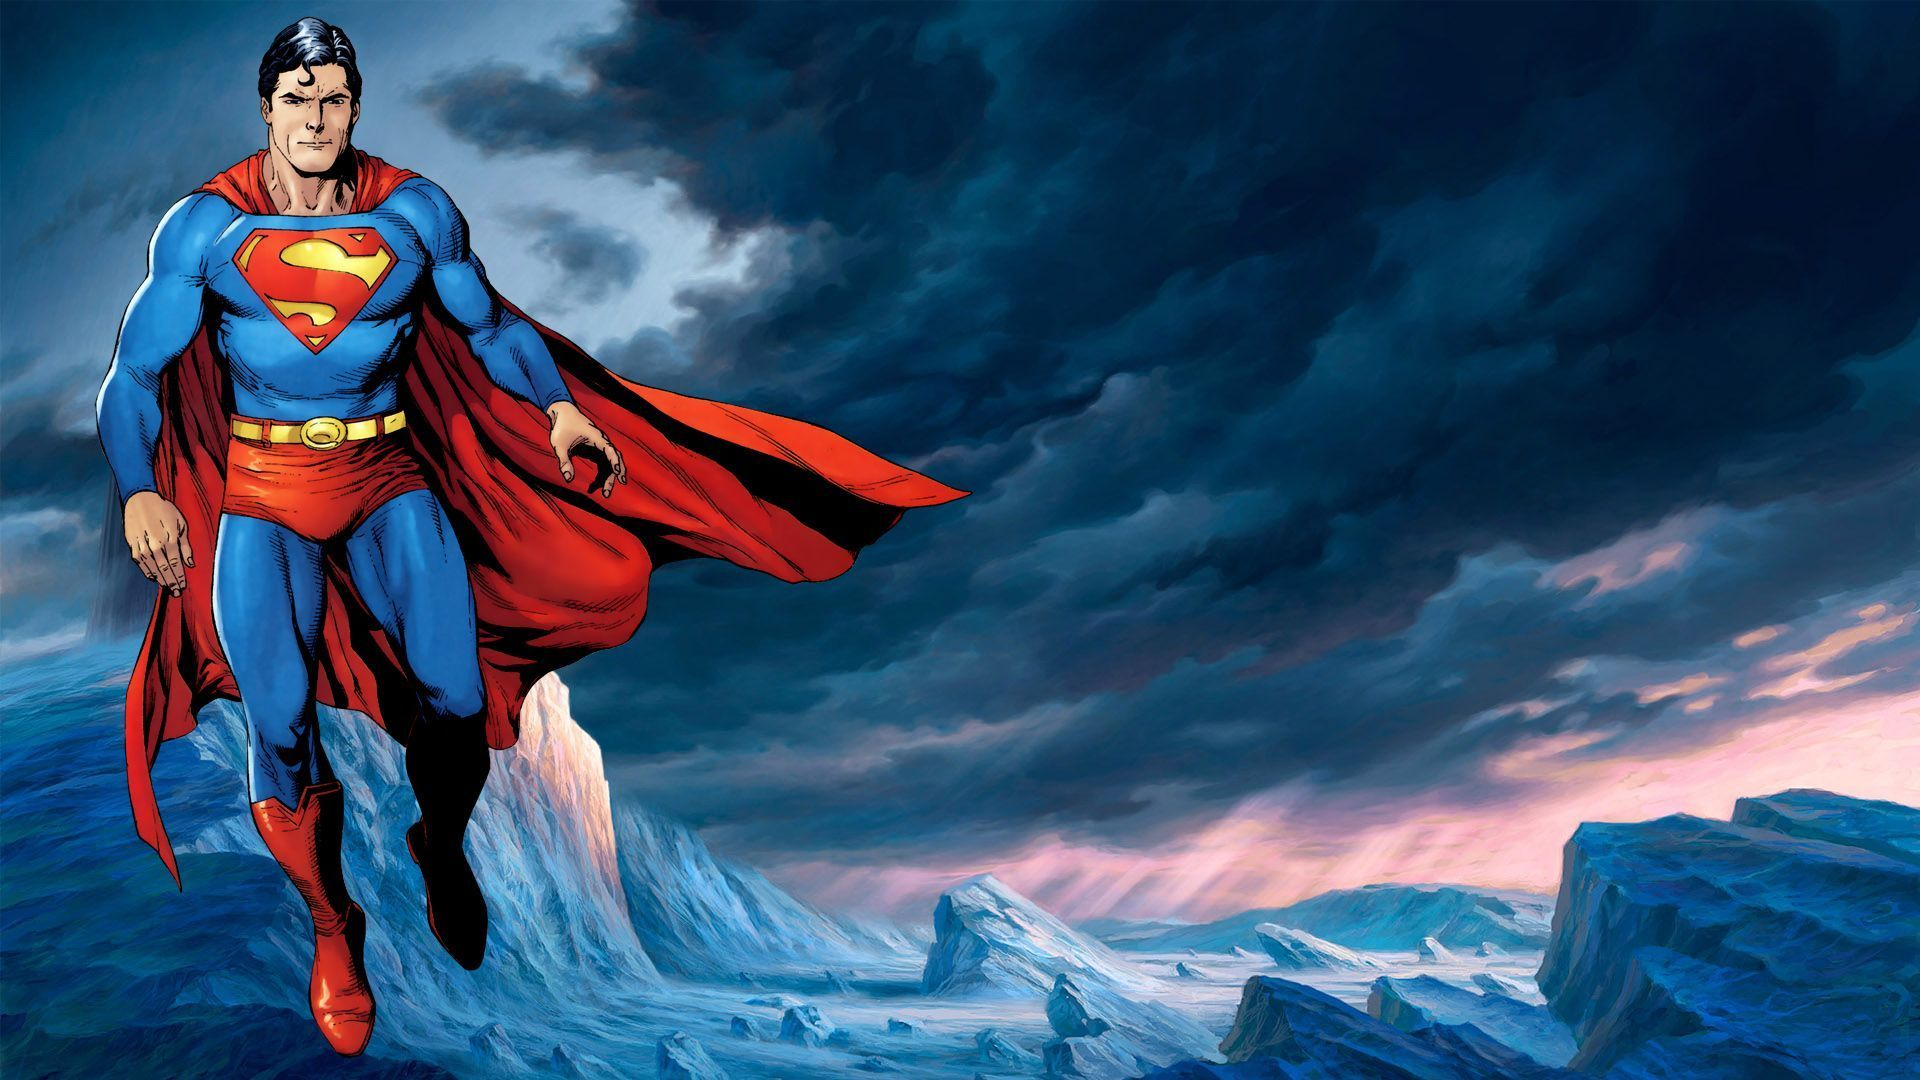 superman-wallpaper-images